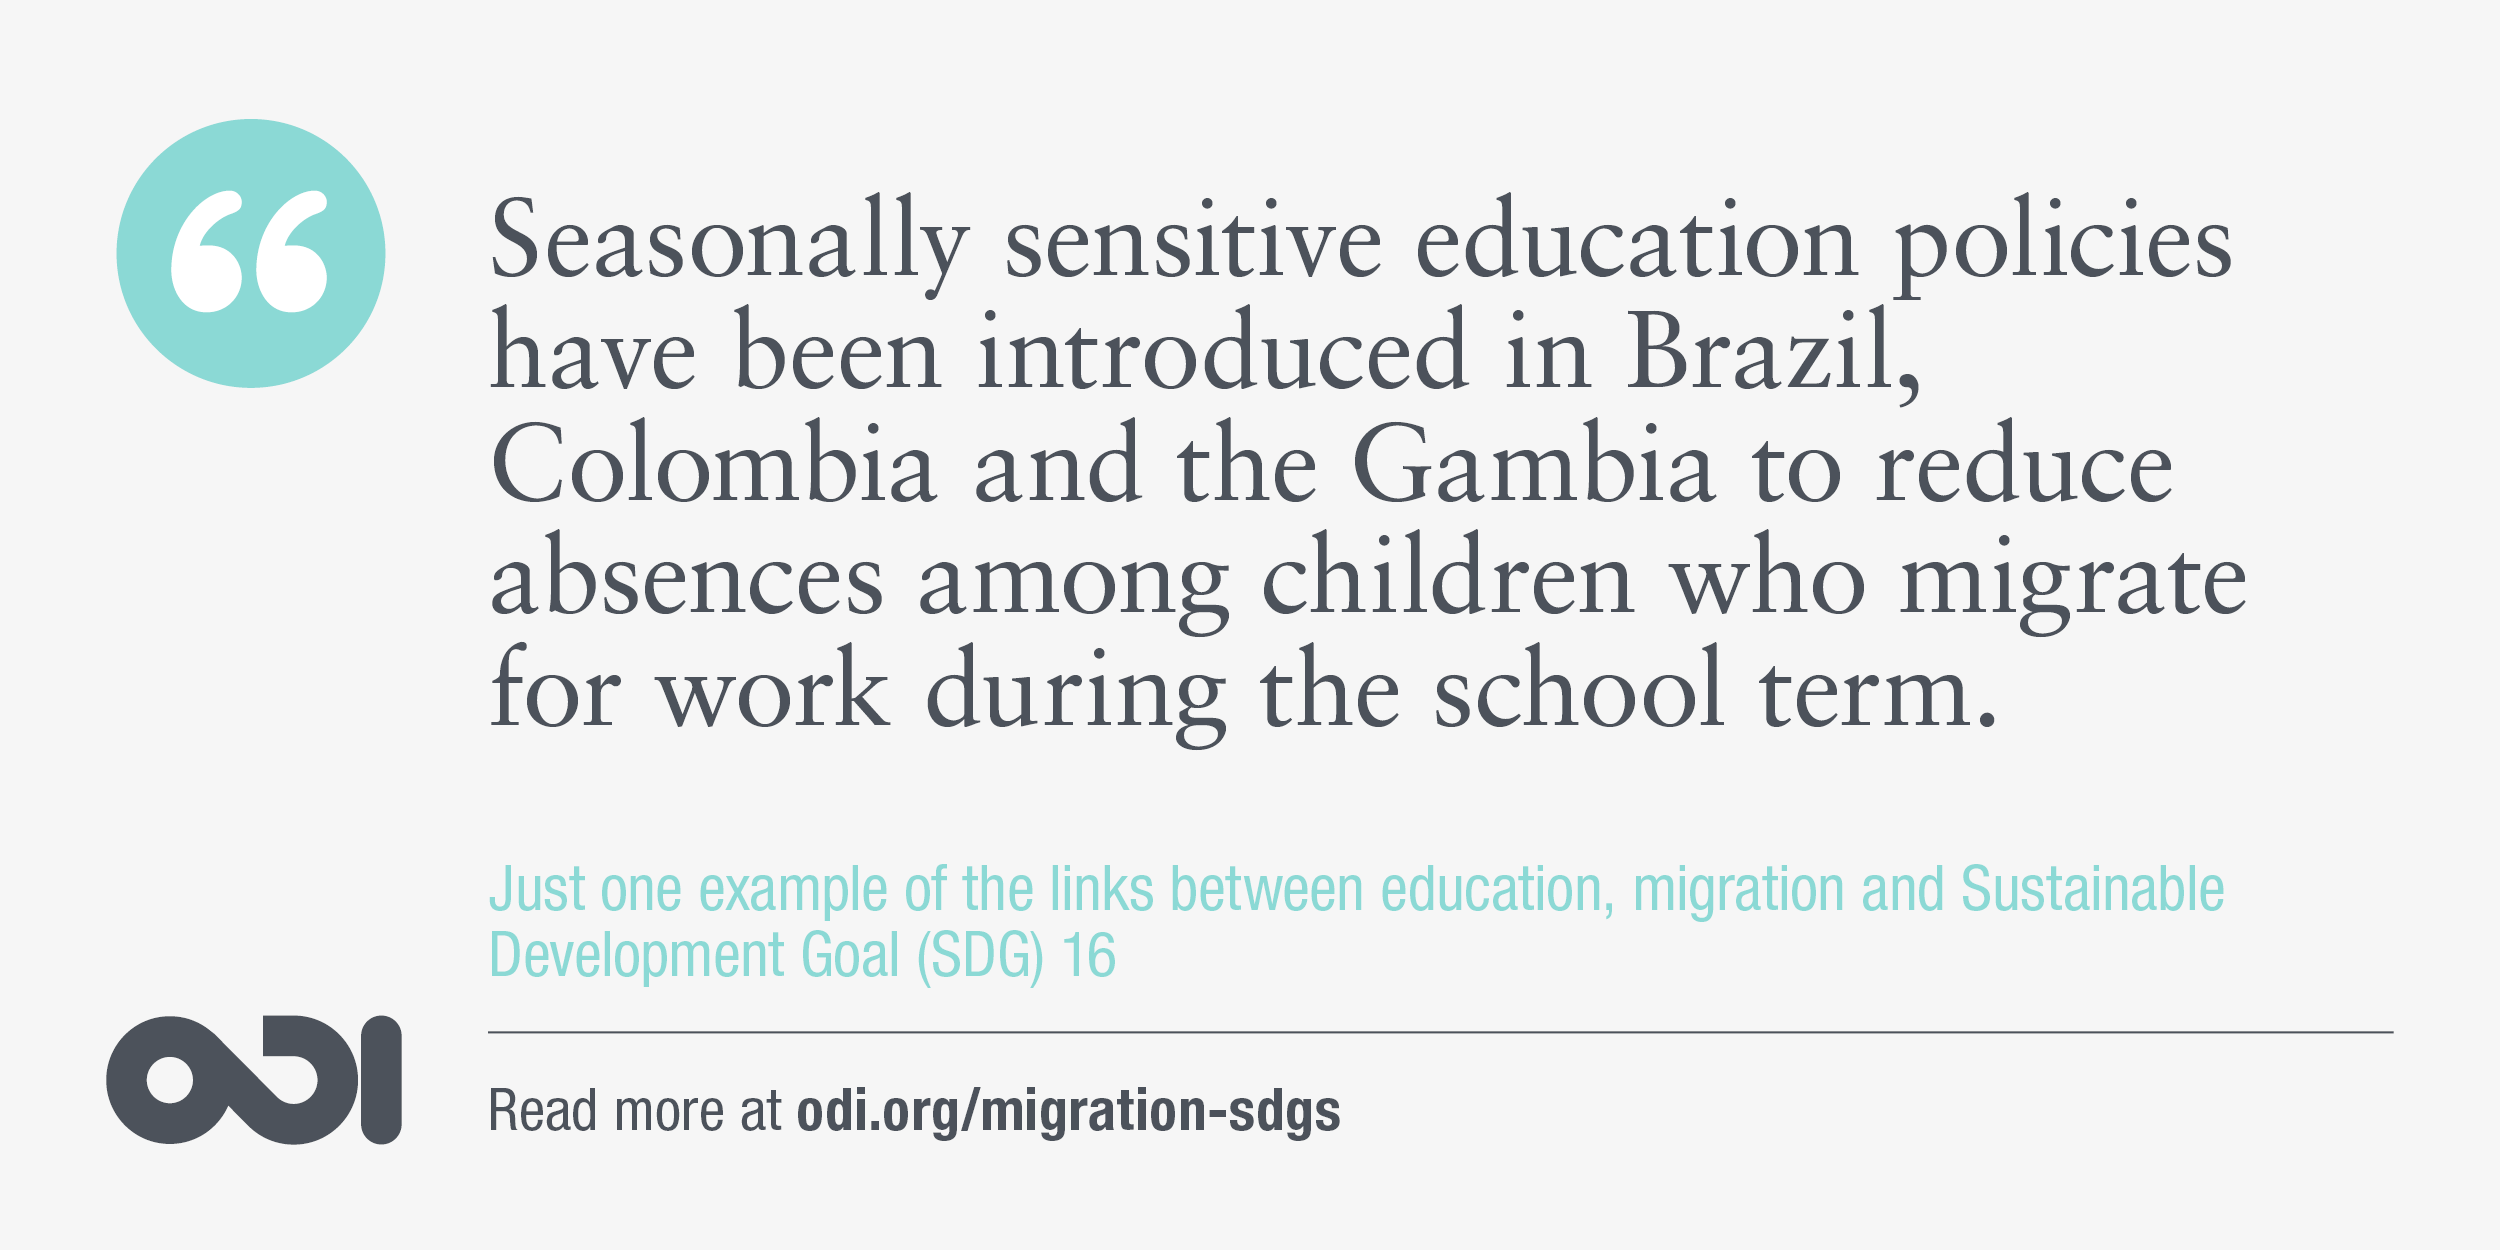 The links between education, migration and SDG